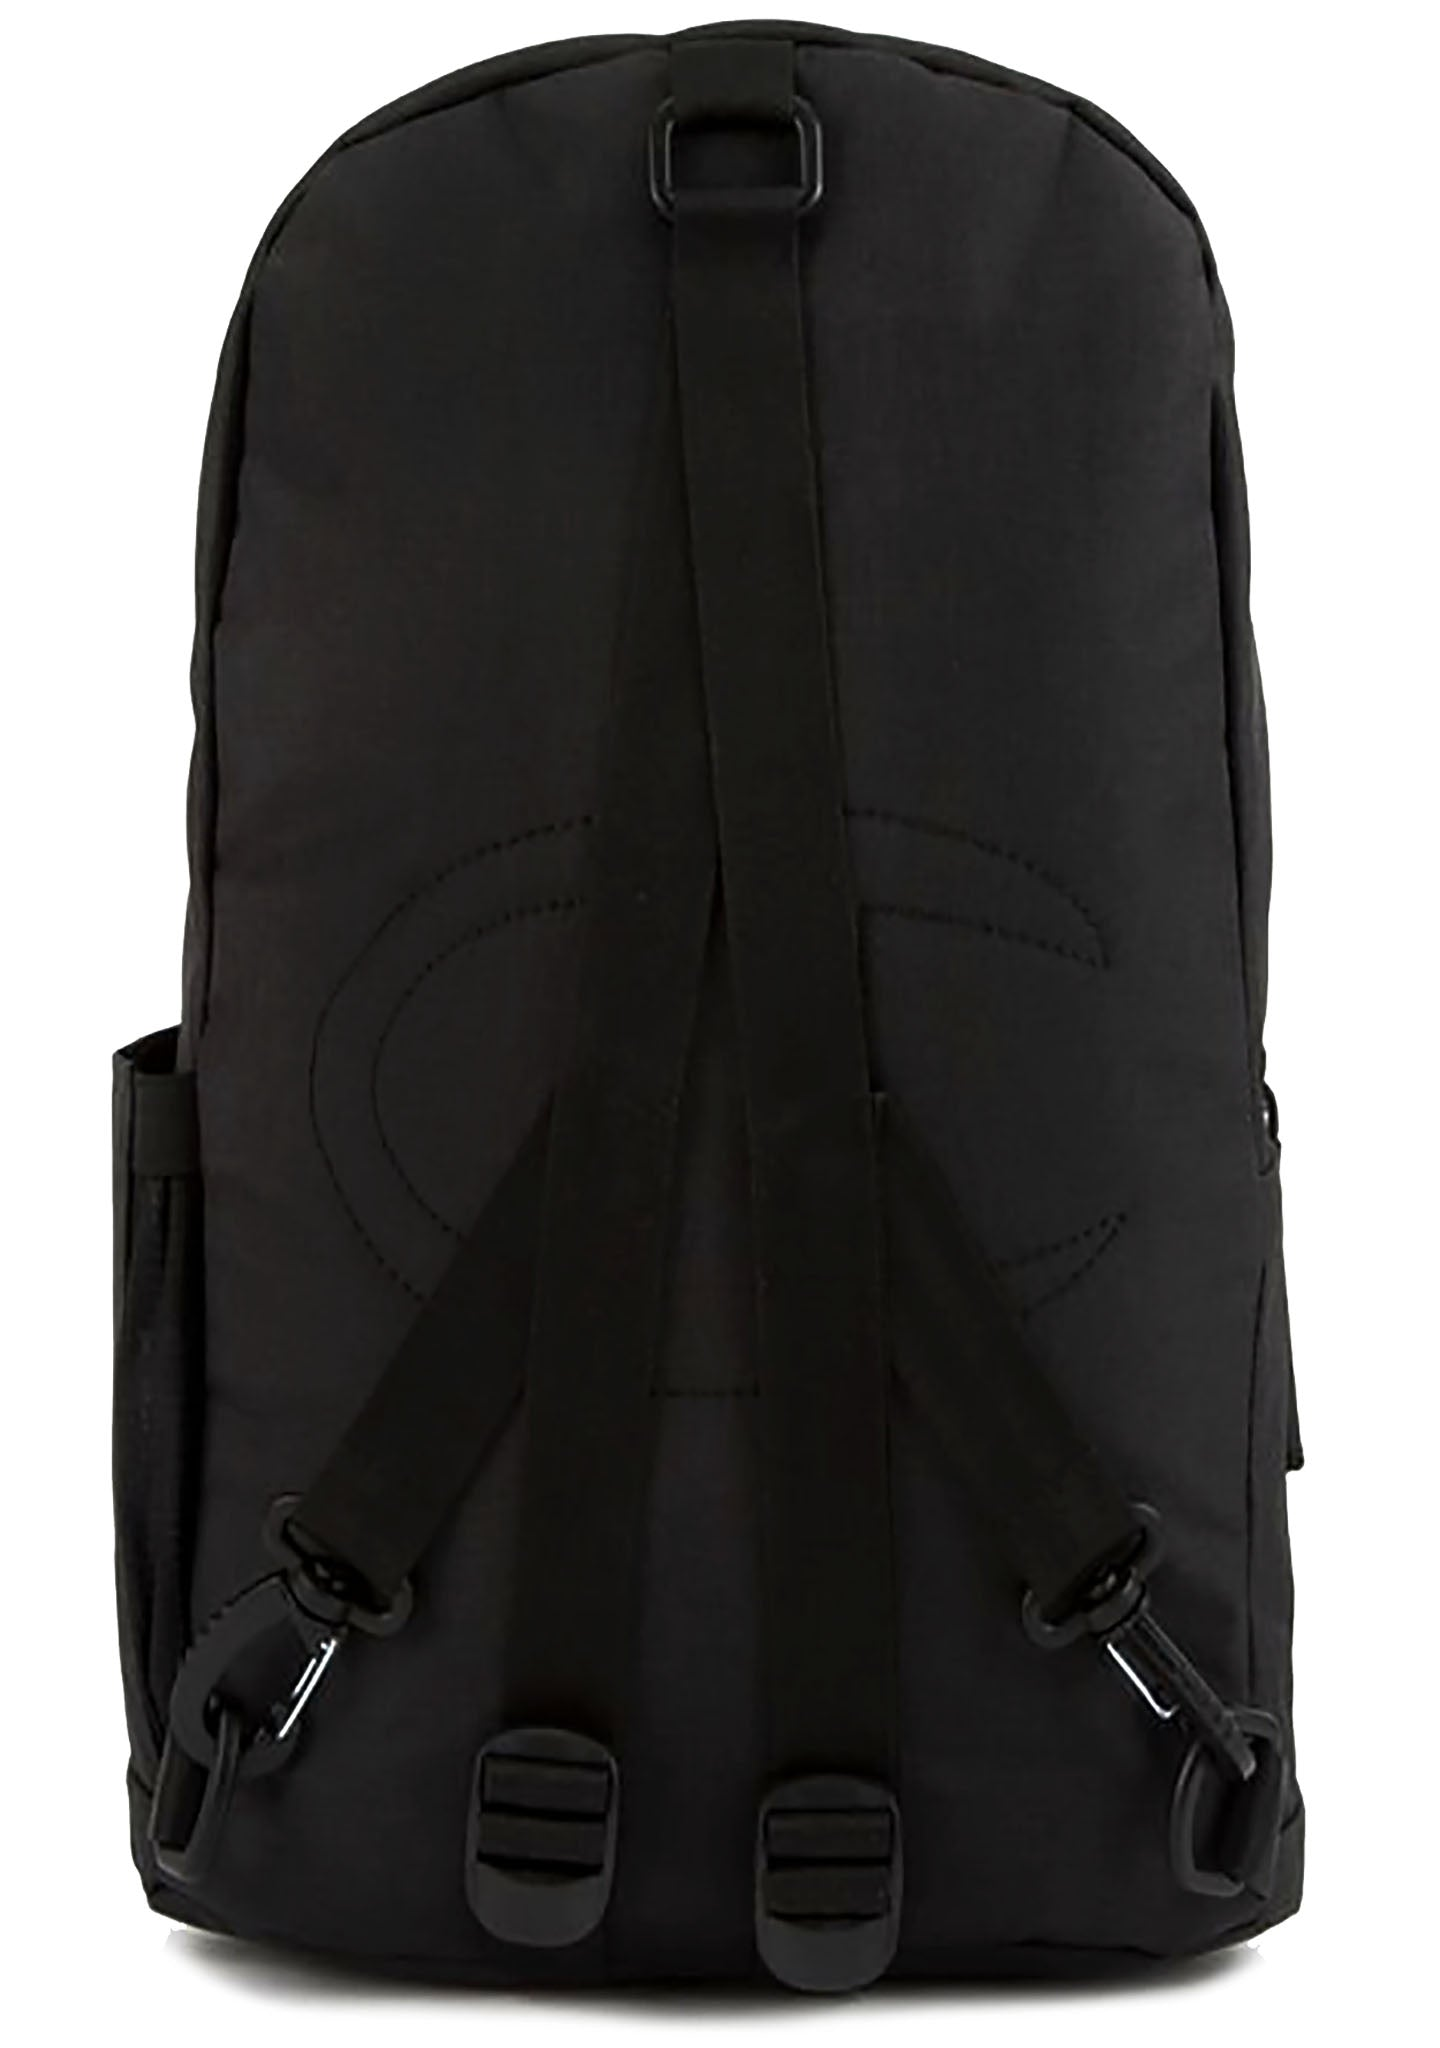 Supercize Mini Crossover Backpack in Black